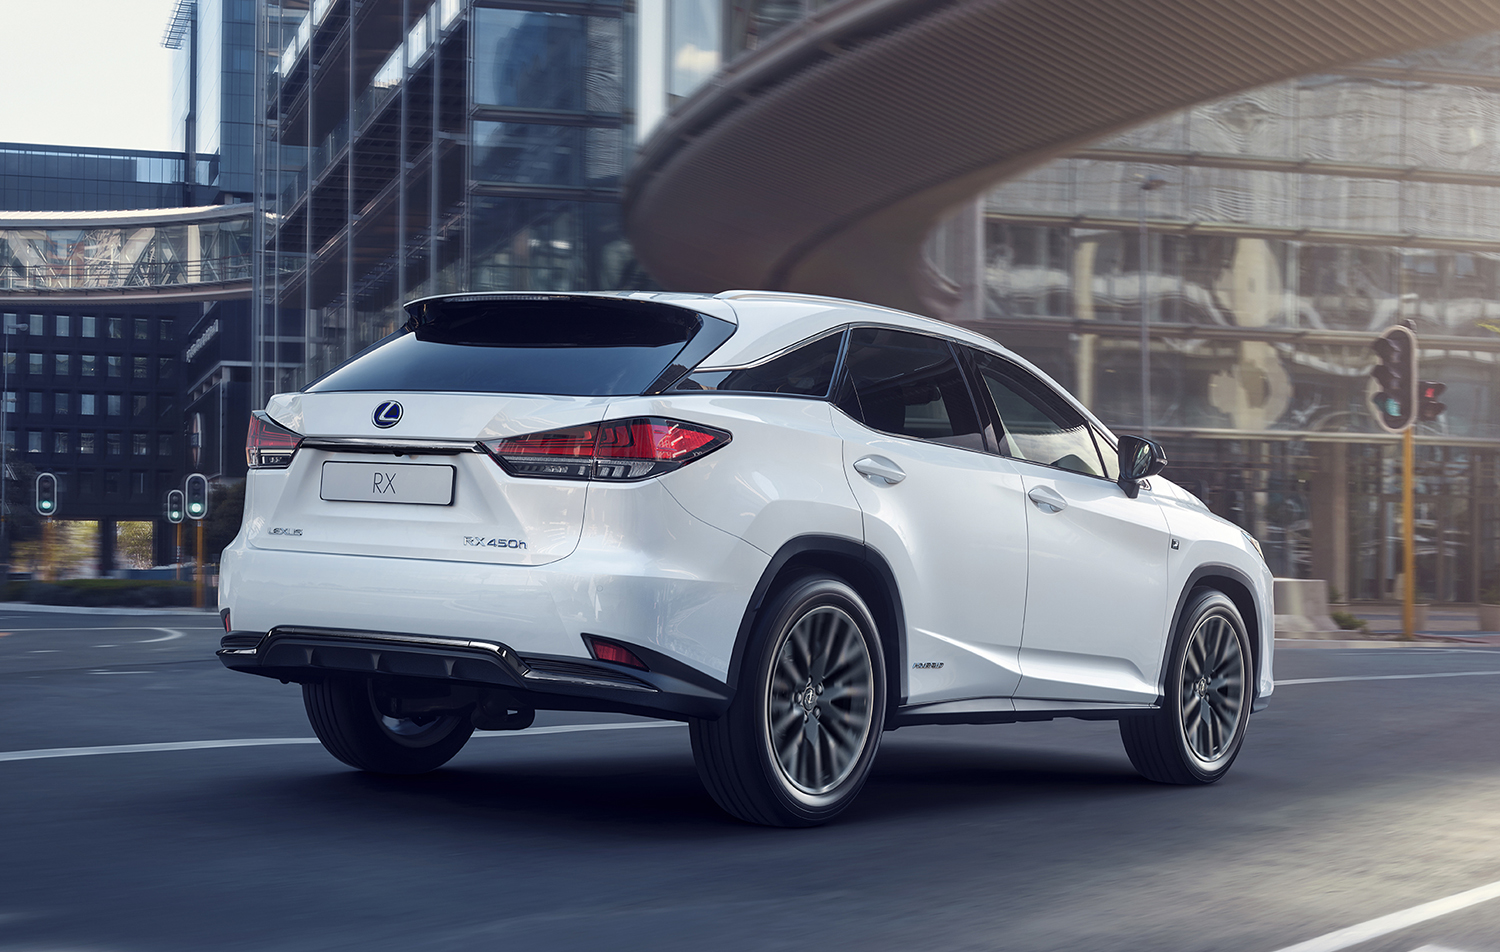 2019 Lexus Rx Facelift Thai Prices And Specs